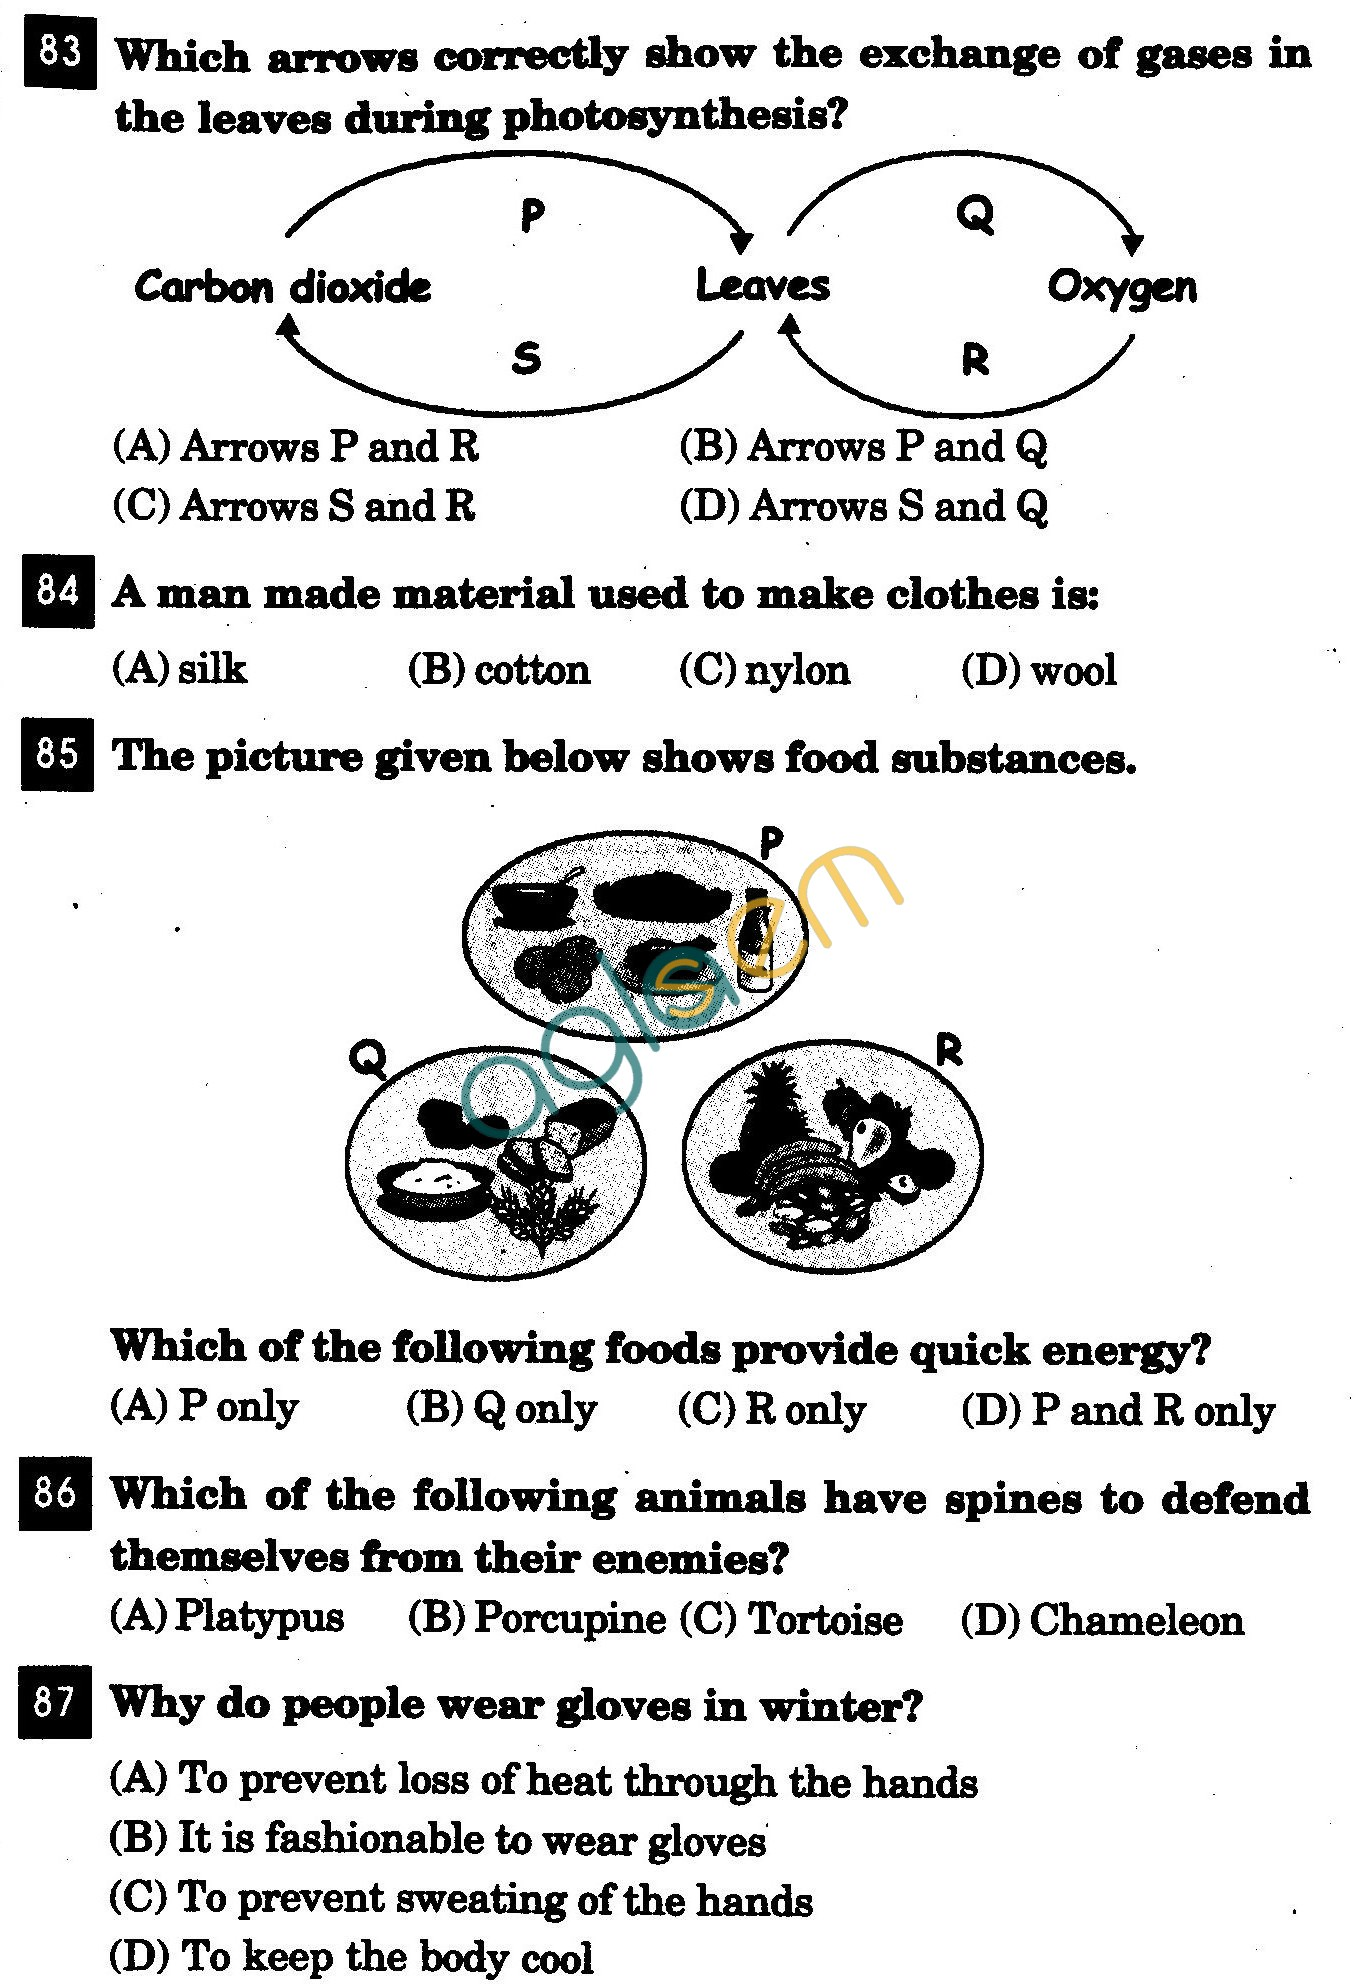 NSTSE 2011: Class IV Question Paper with Answers - Science